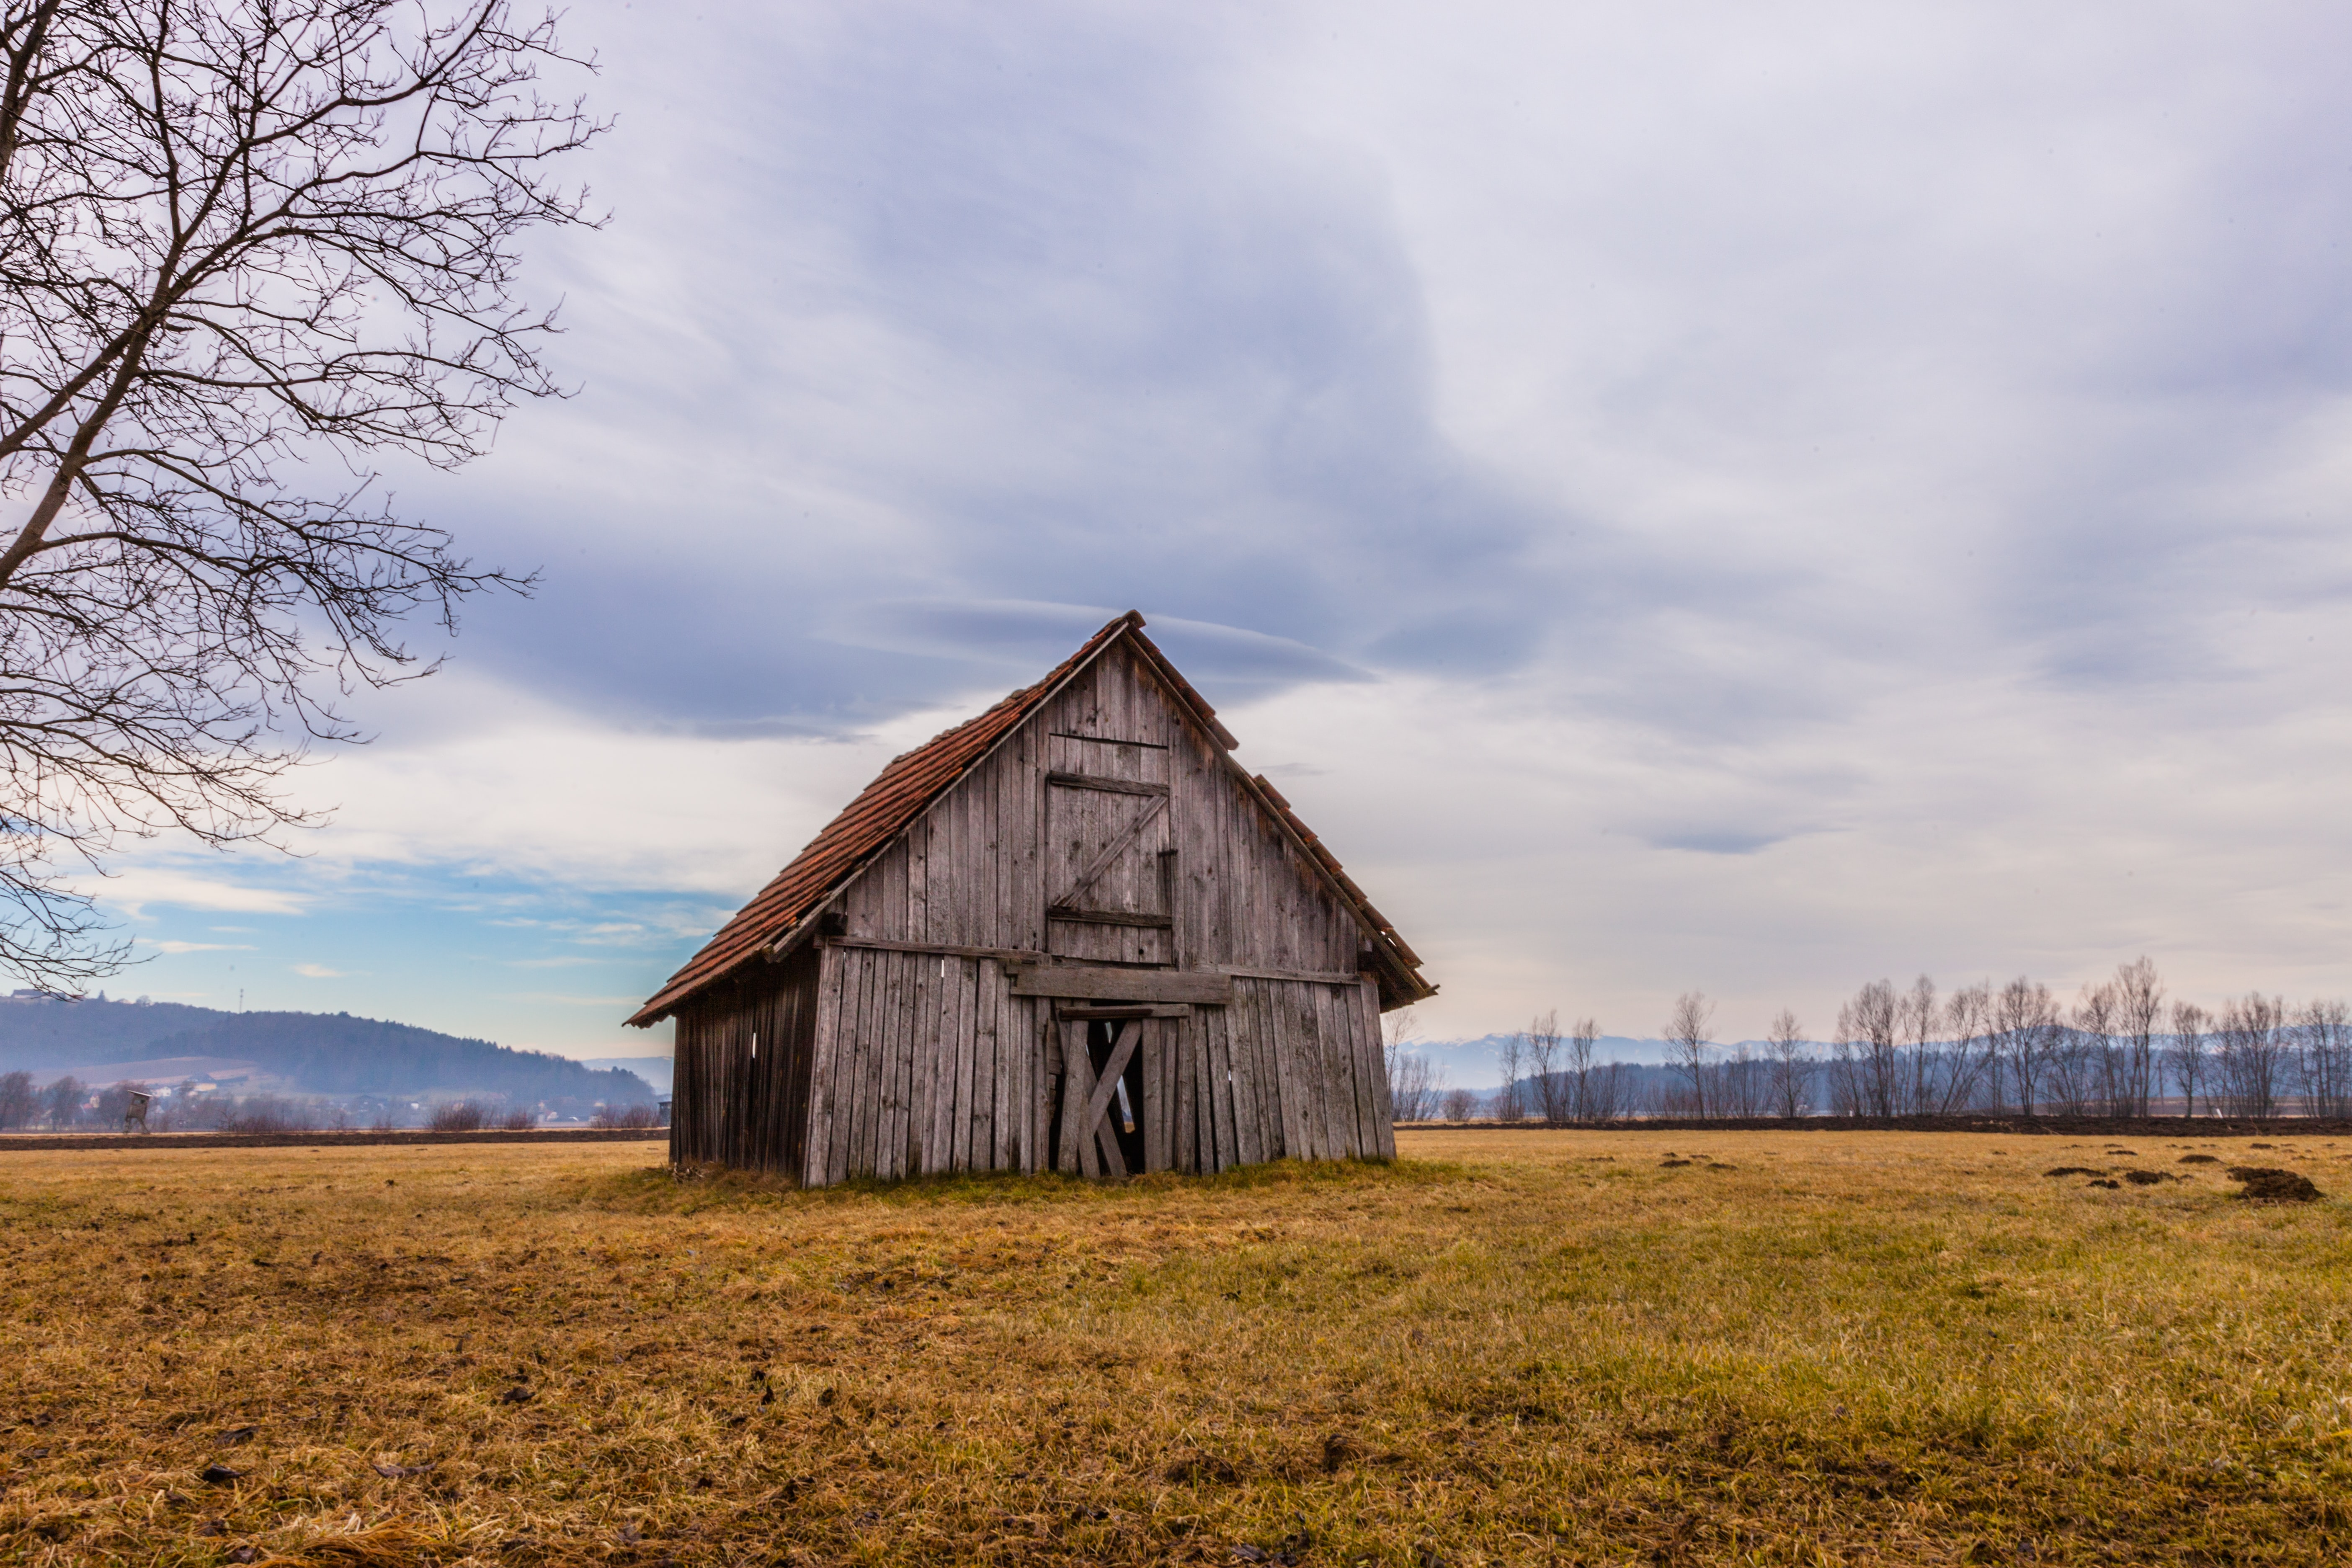 Picture of a wooden barn in a field